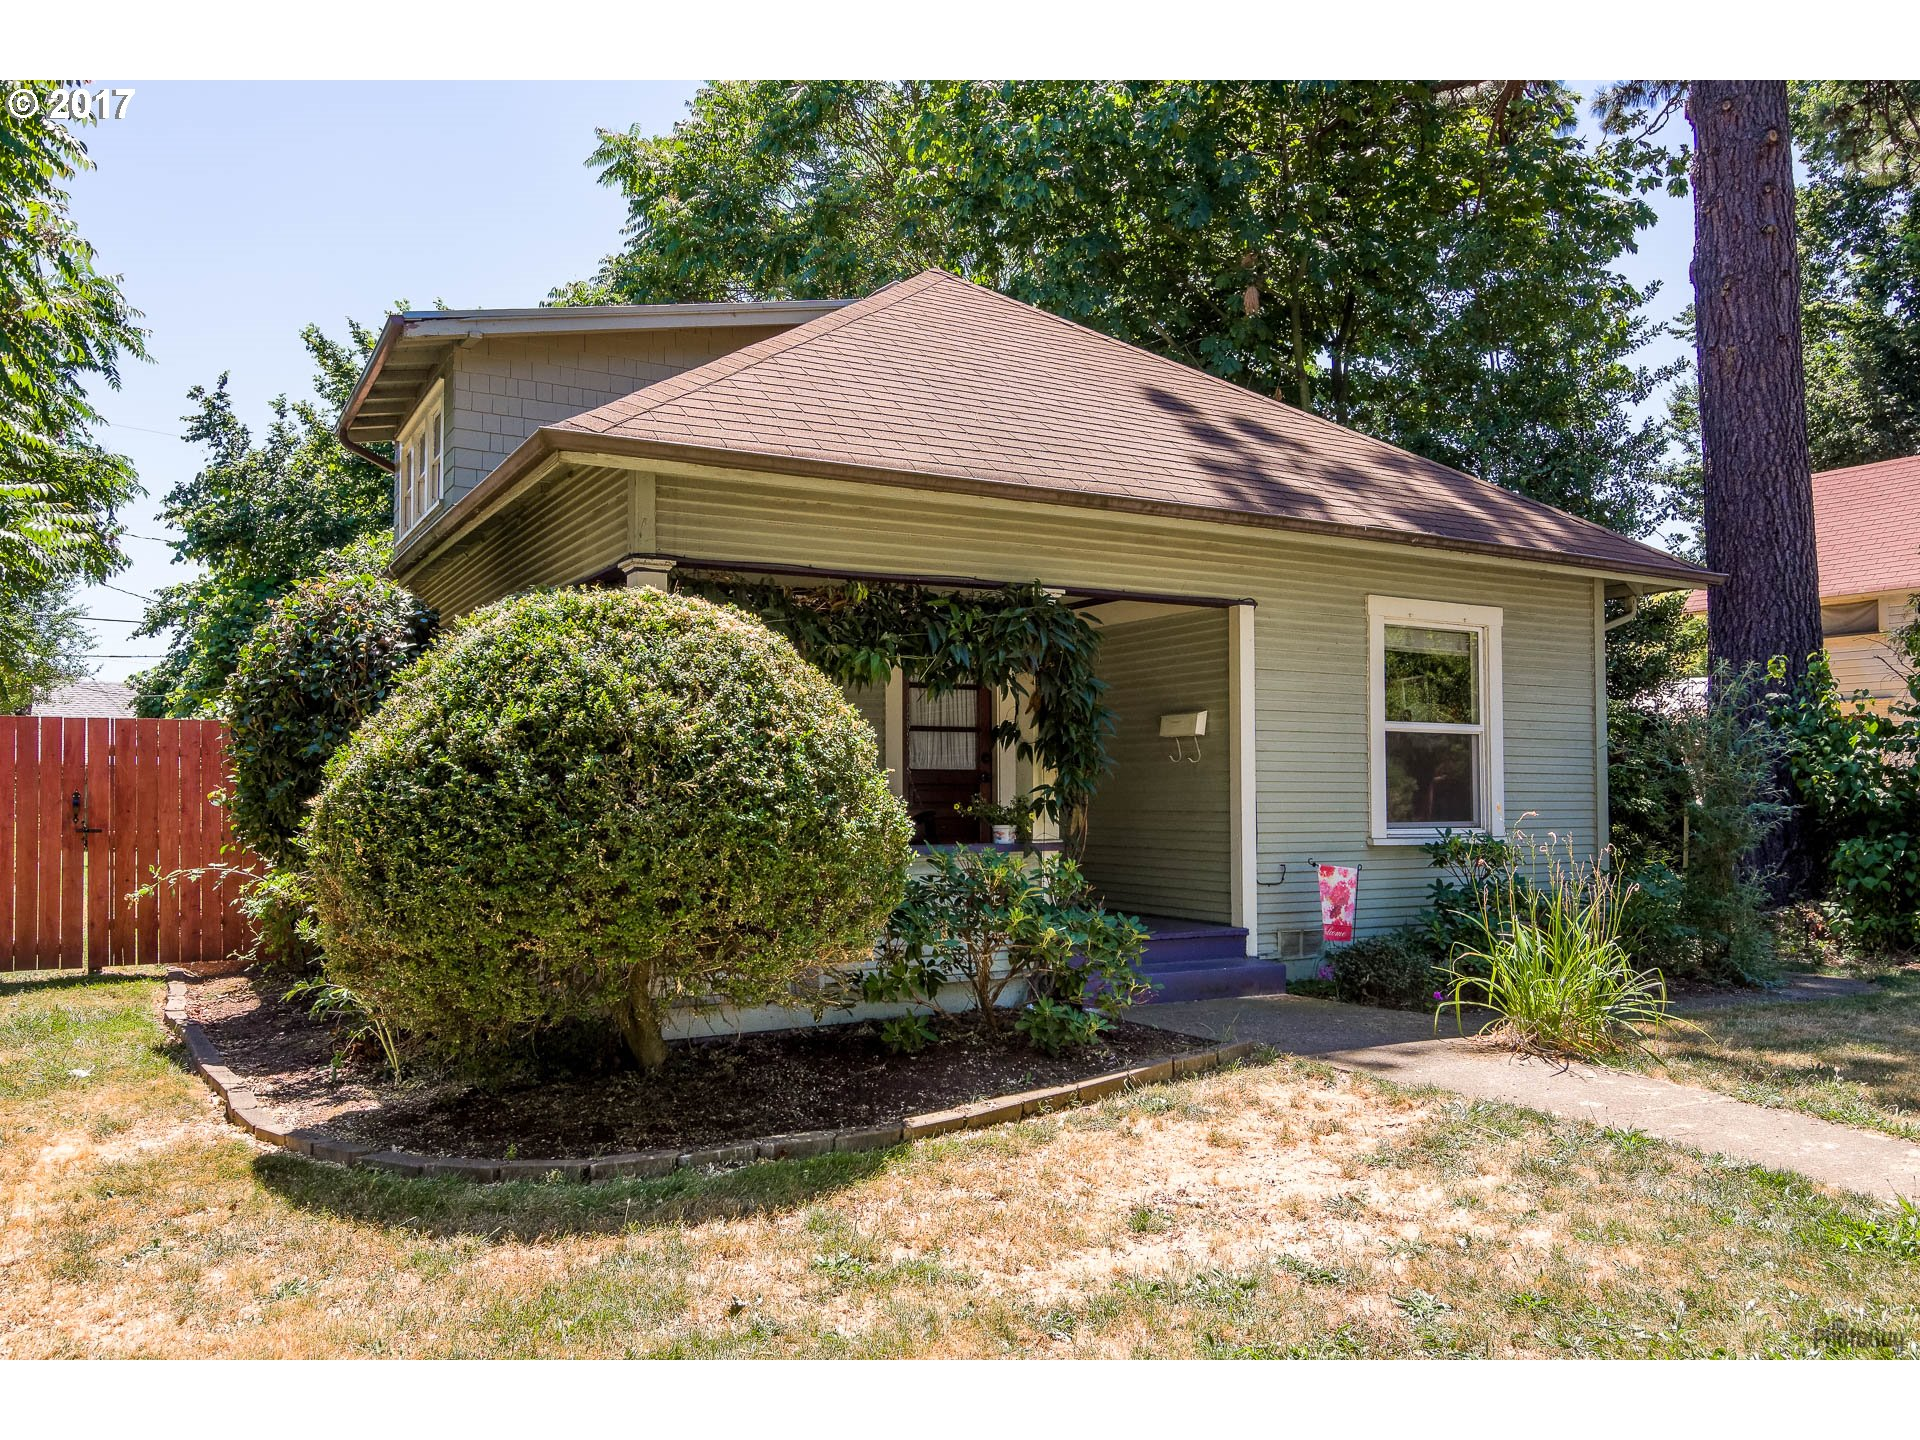 1072 W 8TH AVE, Eugene, OR 97402